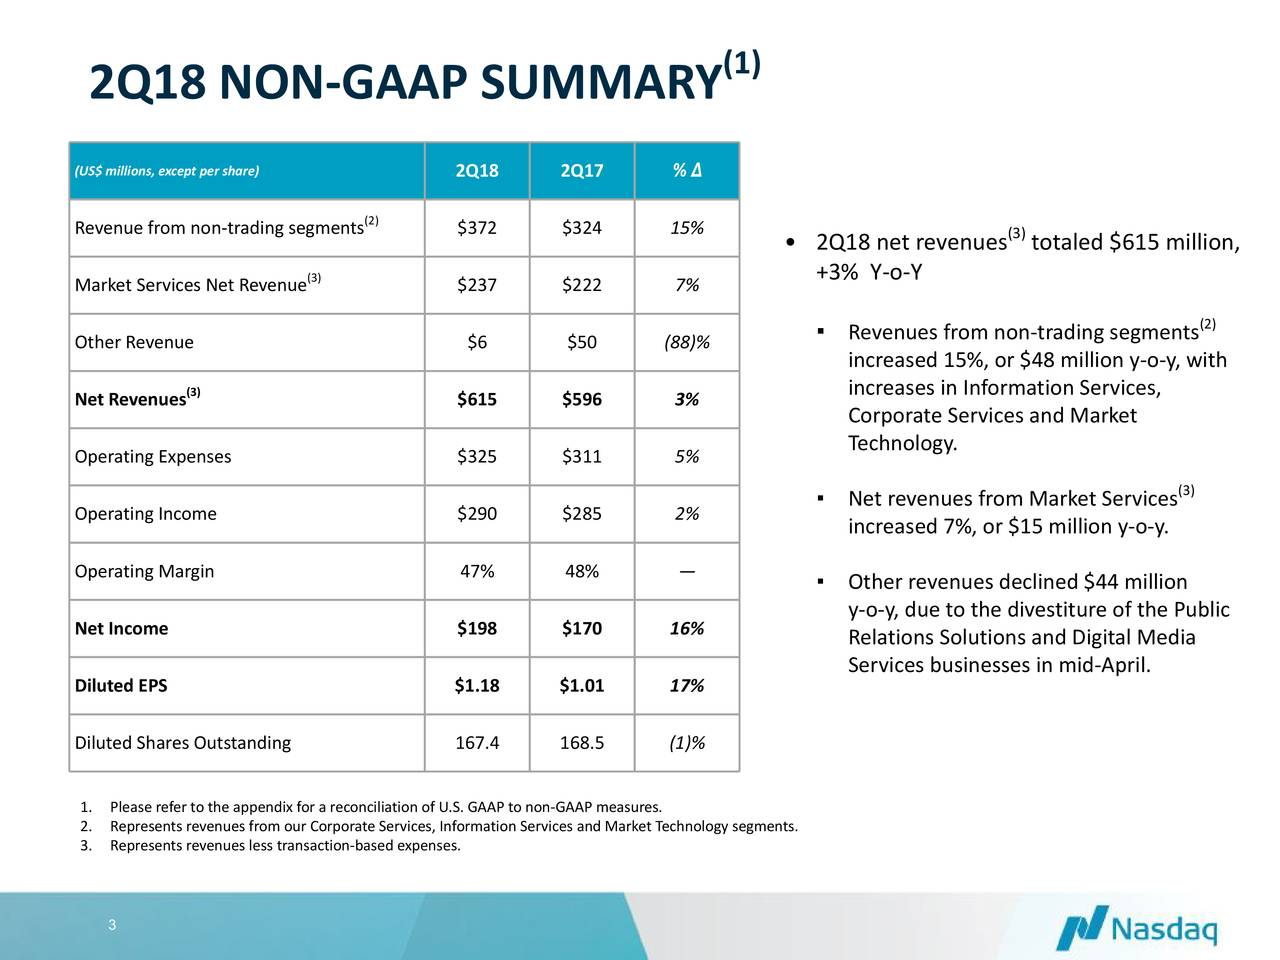 2Q18 NON-GAAP SUMMARY (US$ millions, except per share) 2Q18 2Q17 % Δ Revenue from non-trading segments2) $372 $324 15% • 2Q18 net revenues totaled $615 million, Market Services Net Revenue3) $237 $222 7% +3% Y-o-Y (2) Other Revenue $6 $50 (88)% ▪ Revenues from non-trading segments increased 15%, or $48 million y-o-y, with (3) increases in Information Services, Net Revenues $615 $596 3% Corporate Services and Market Technology. Operating Expenses $325 $311 5% (3) Operating Income $290 $285 2% ▪ Net revenues from Market Services increased 7%, or $15 million y-o-y. Operating Margin 47% 48% — ▪ Other revenues declined $44 million y-o-y, due to the divestiture of the Public Net Income $198 $170 16% Relations Solutions and Digital Media Services businesses in mid-April. Diluted EPS $1.18 $1.01 17% Diluted Shares Outstanding 167.4 168.5 (1)% 1. Please refer to the appendix for a reconciliation of U.S. GAAP to non-GAAP measures. 2. Represents revenues from our Corporate Services, Information Services and Market Technology segments. 3. Represents revenues less transaction-based expenses. 3